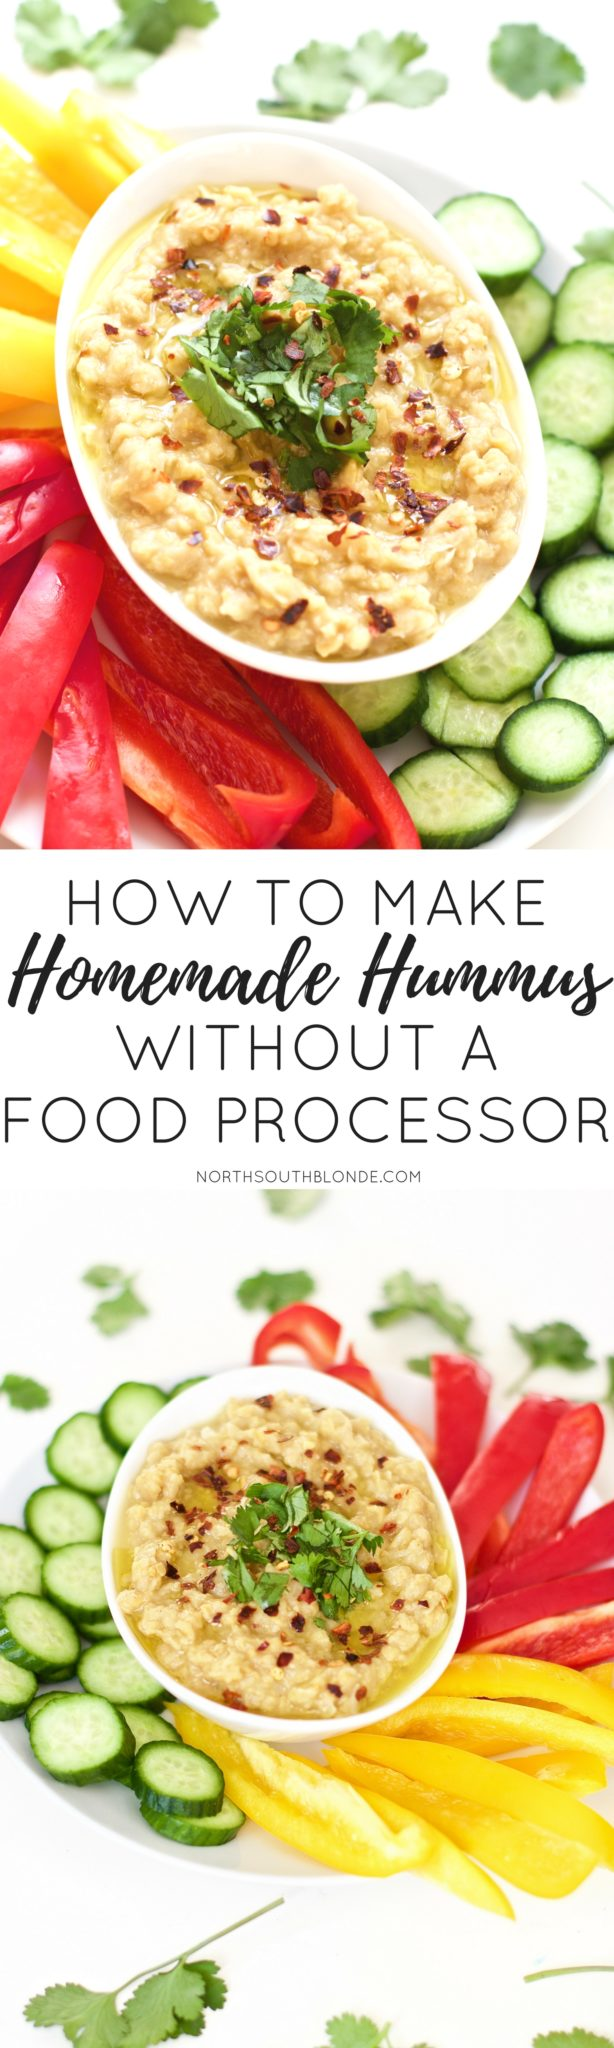 How to make homemade hummus without a food processor forumfinder Choice Image